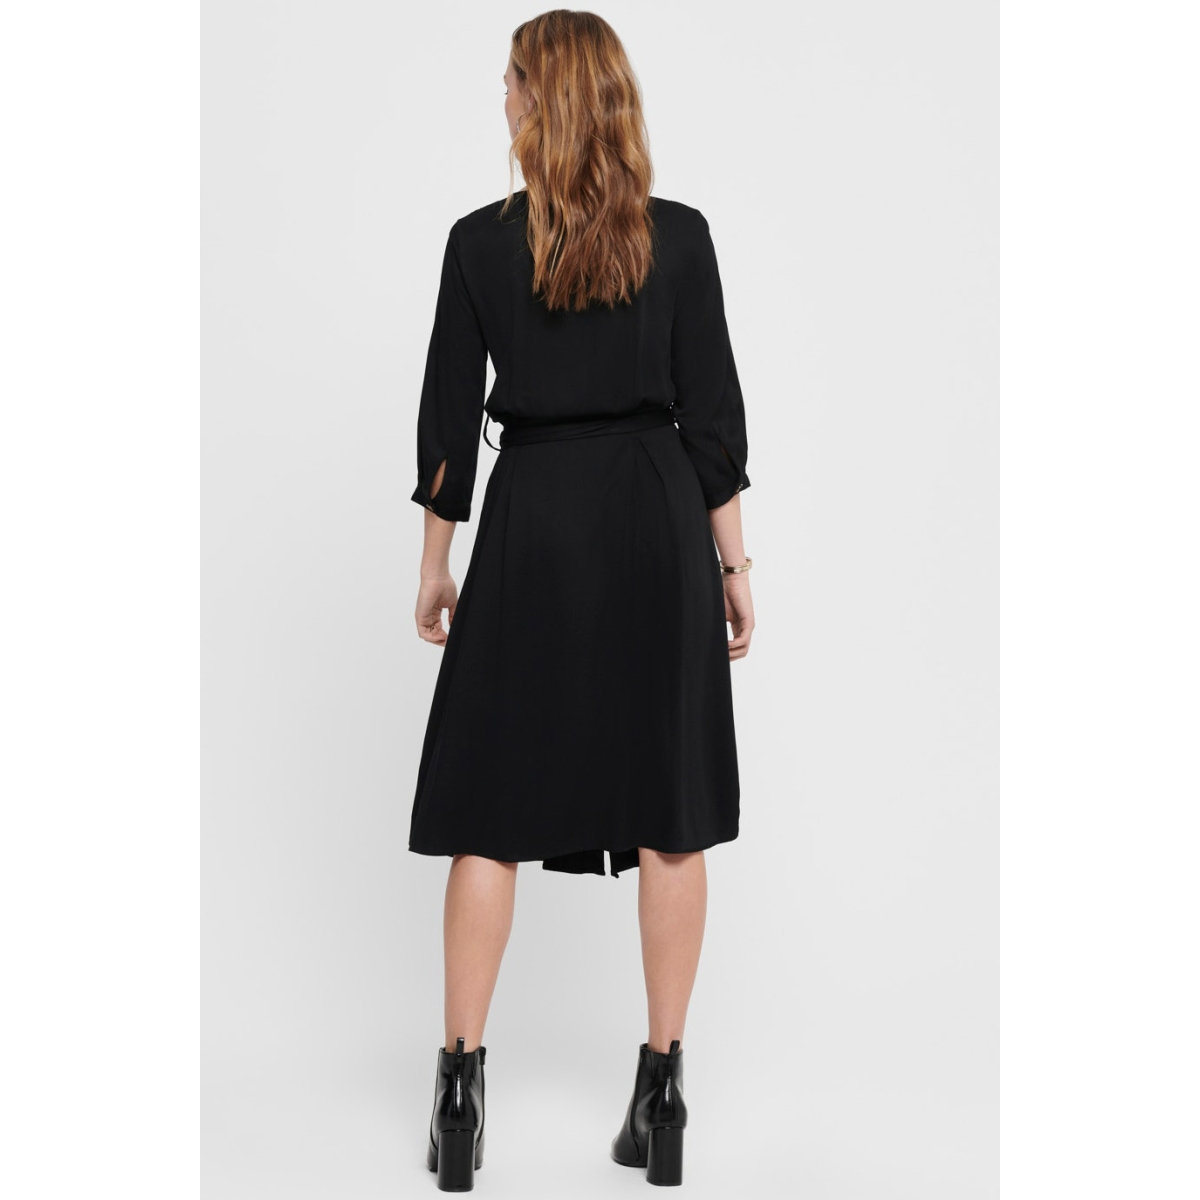 jdyrhea 3/4 dress wvn 15197863 jacqueline de yong jurk black